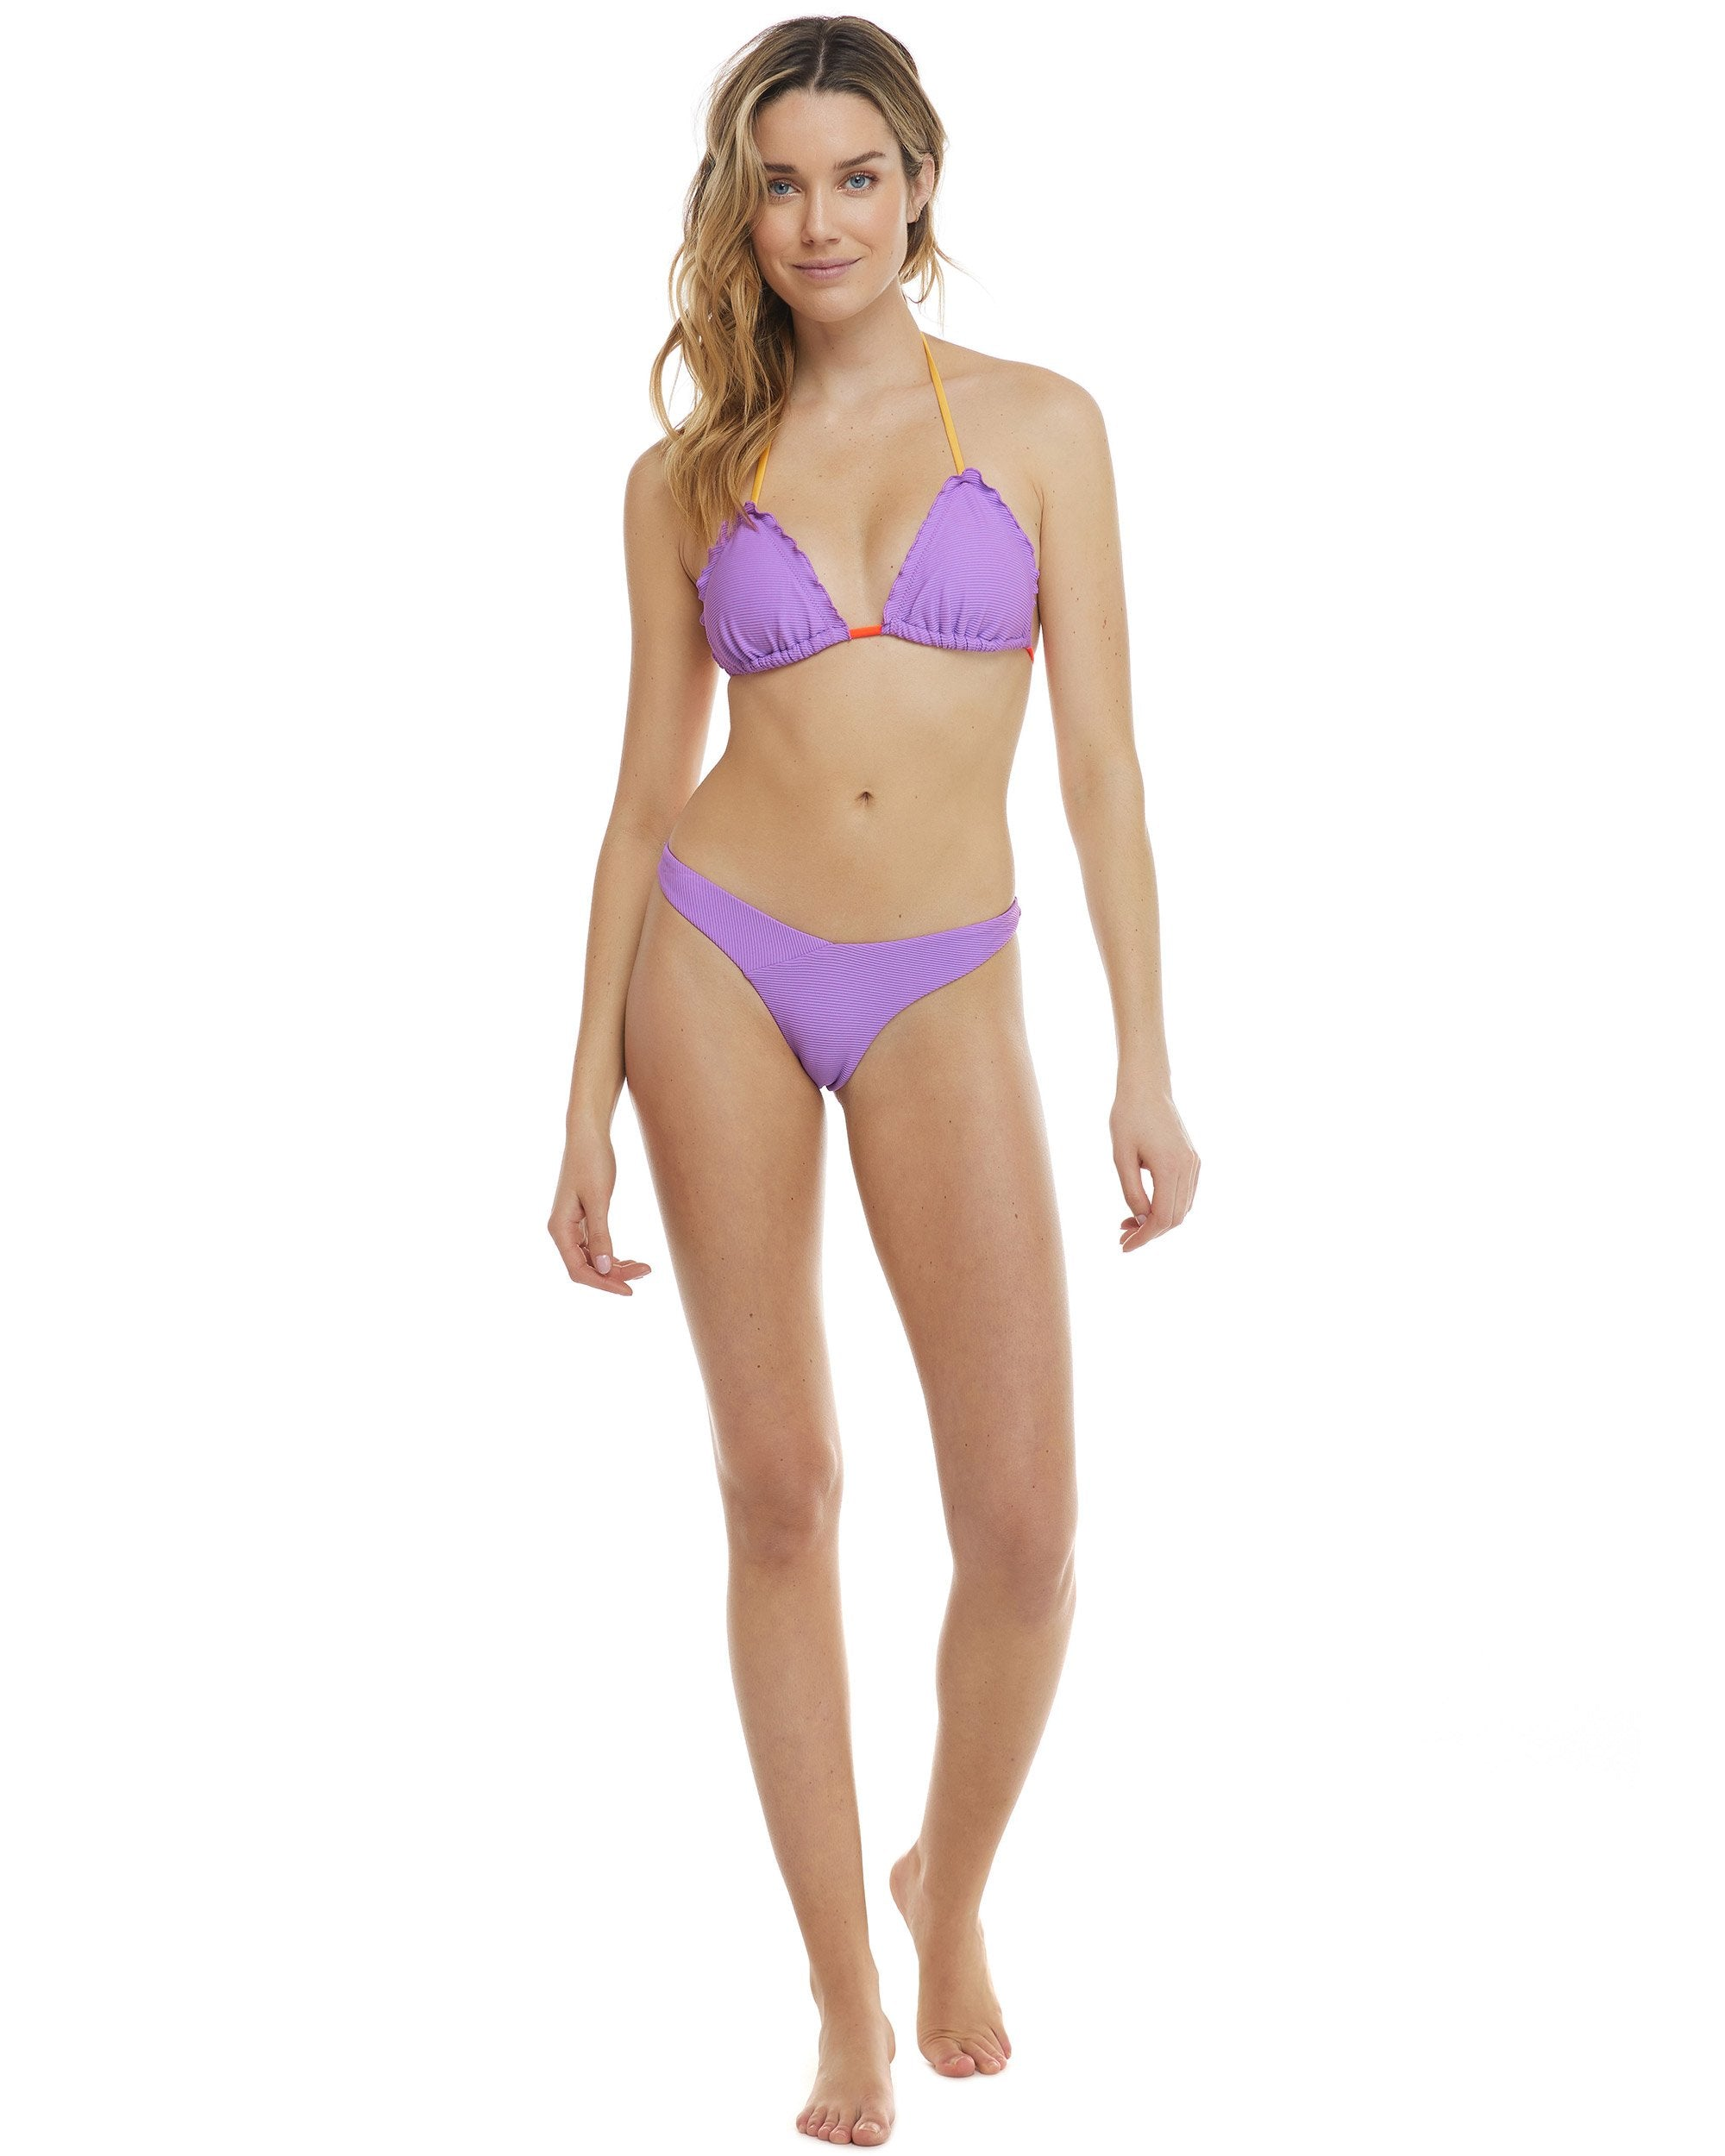 Body Glove Spectrum Dita Ruffle Triangle Bikini Top